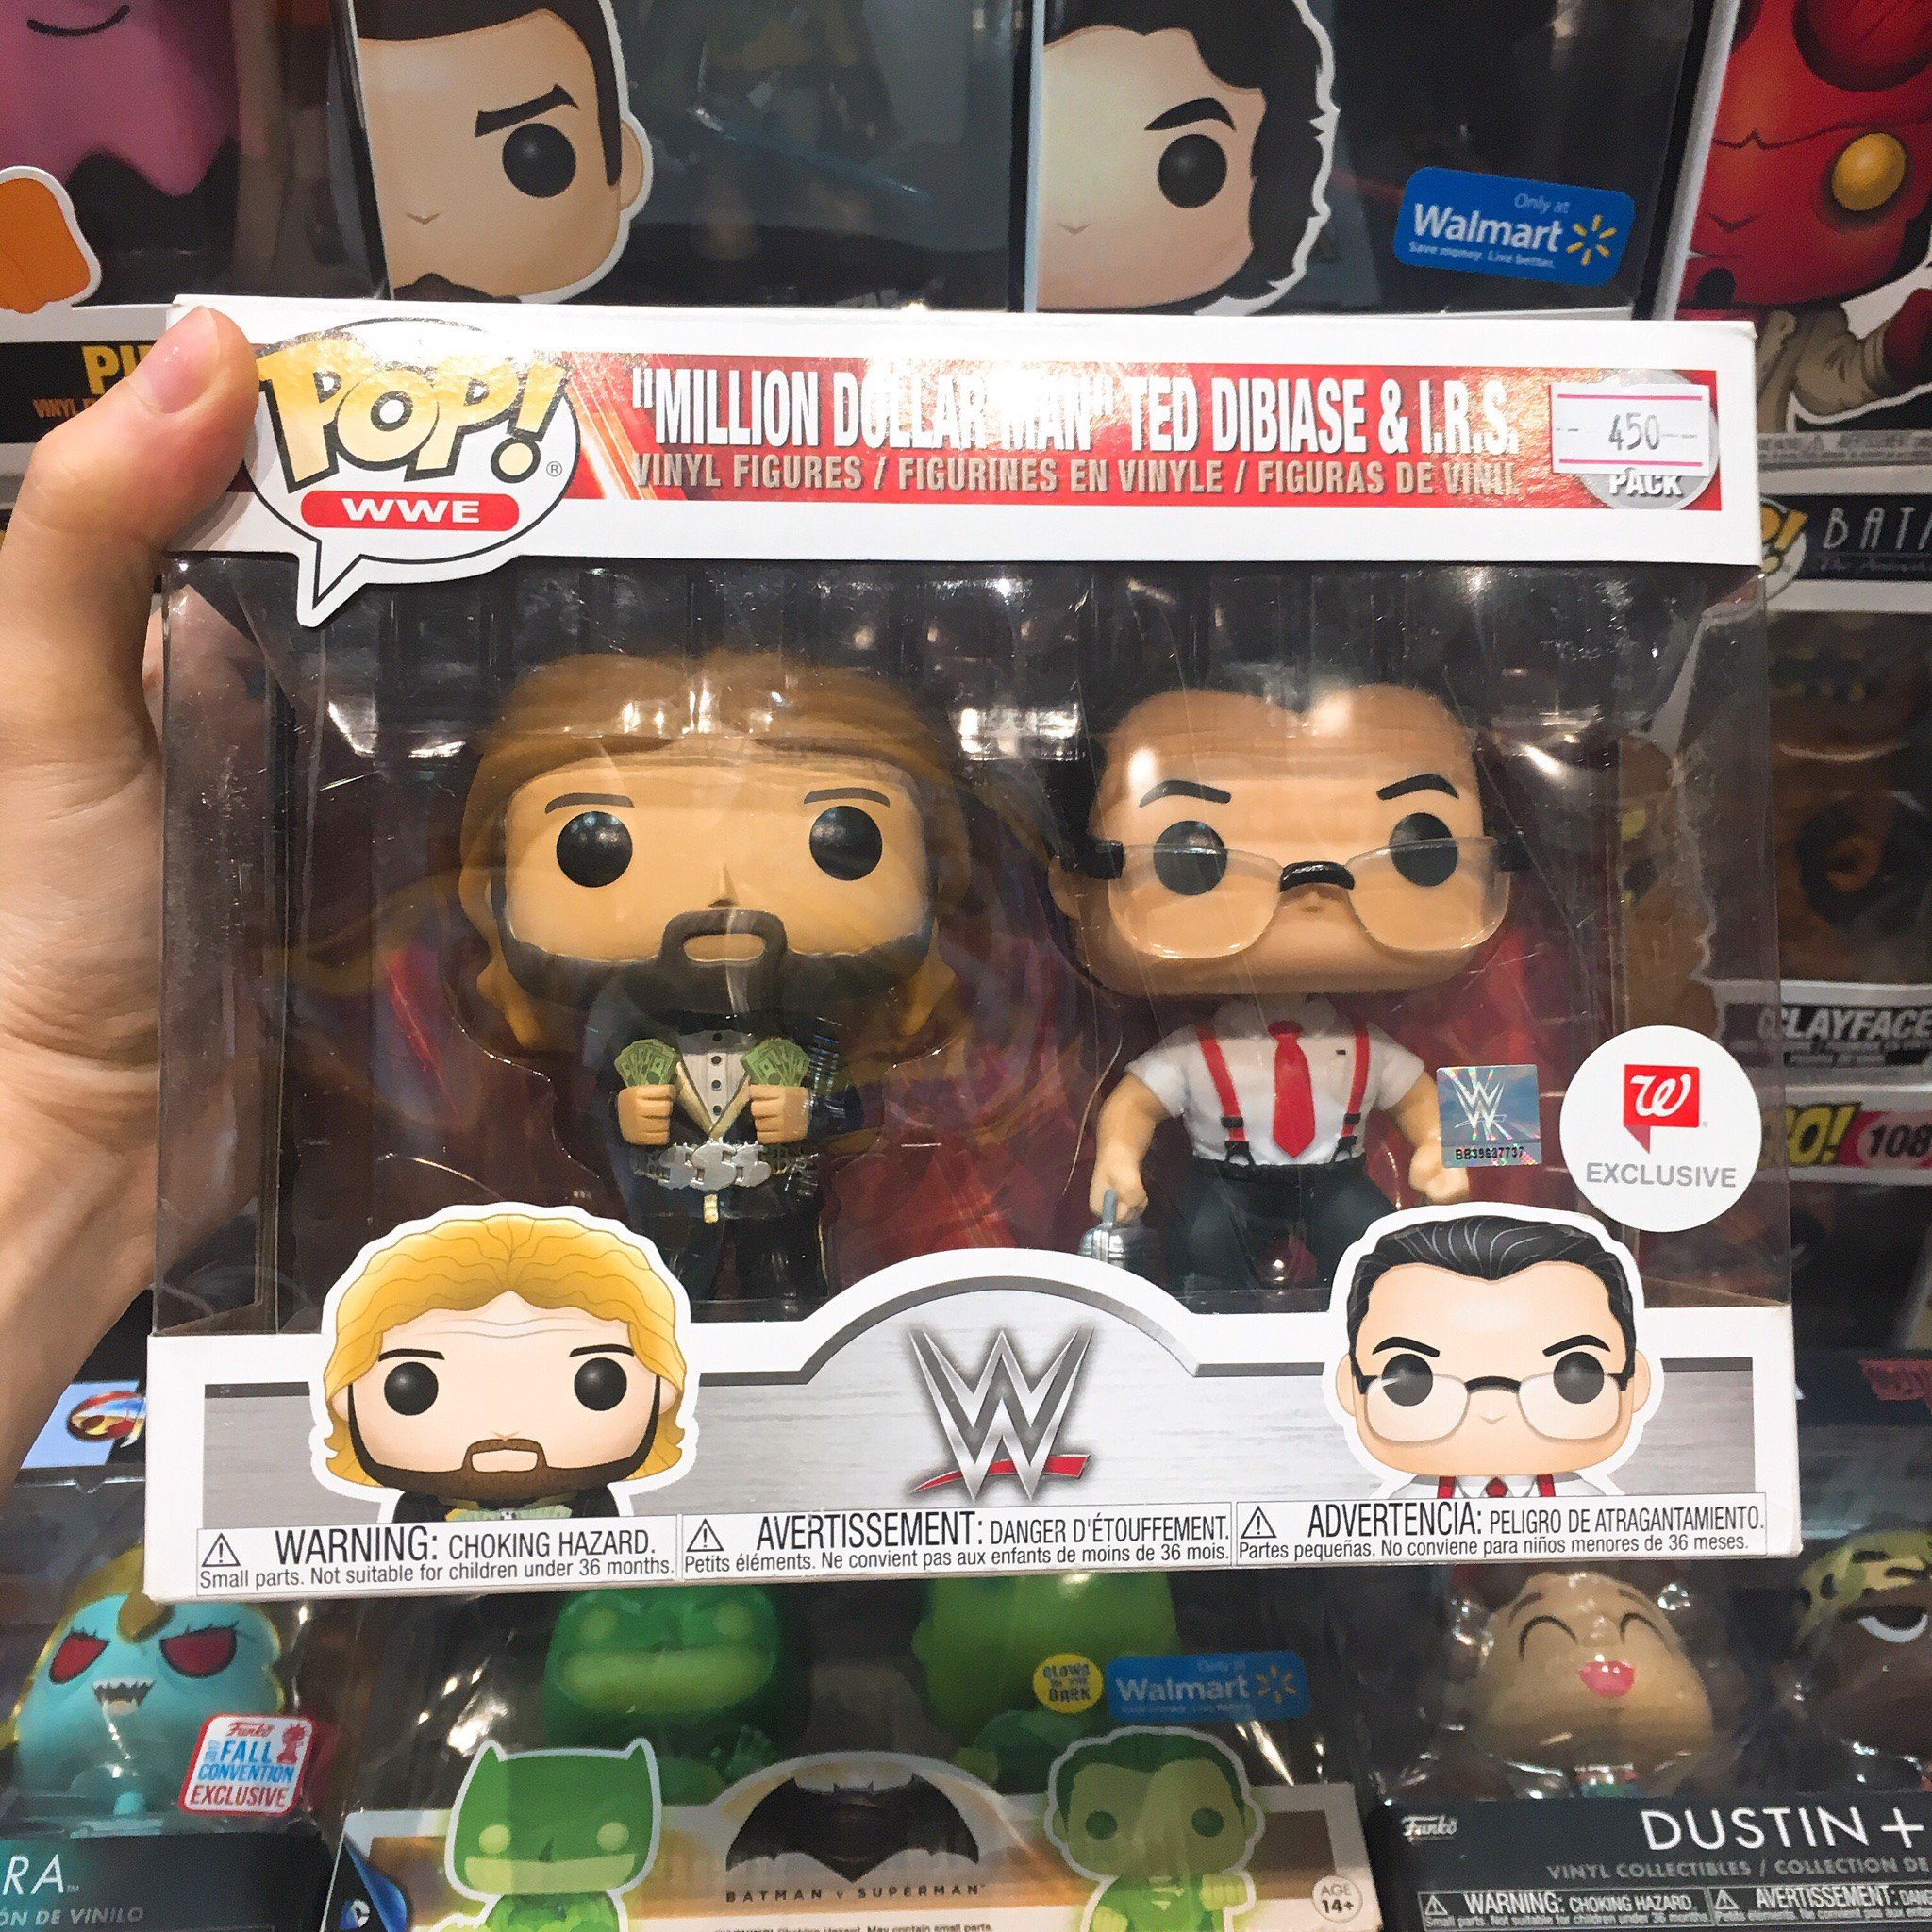 [CÓ SẴN] FUNKO POP 2 Pack WWE Million Dollar Man Ted Dibiase & IRS